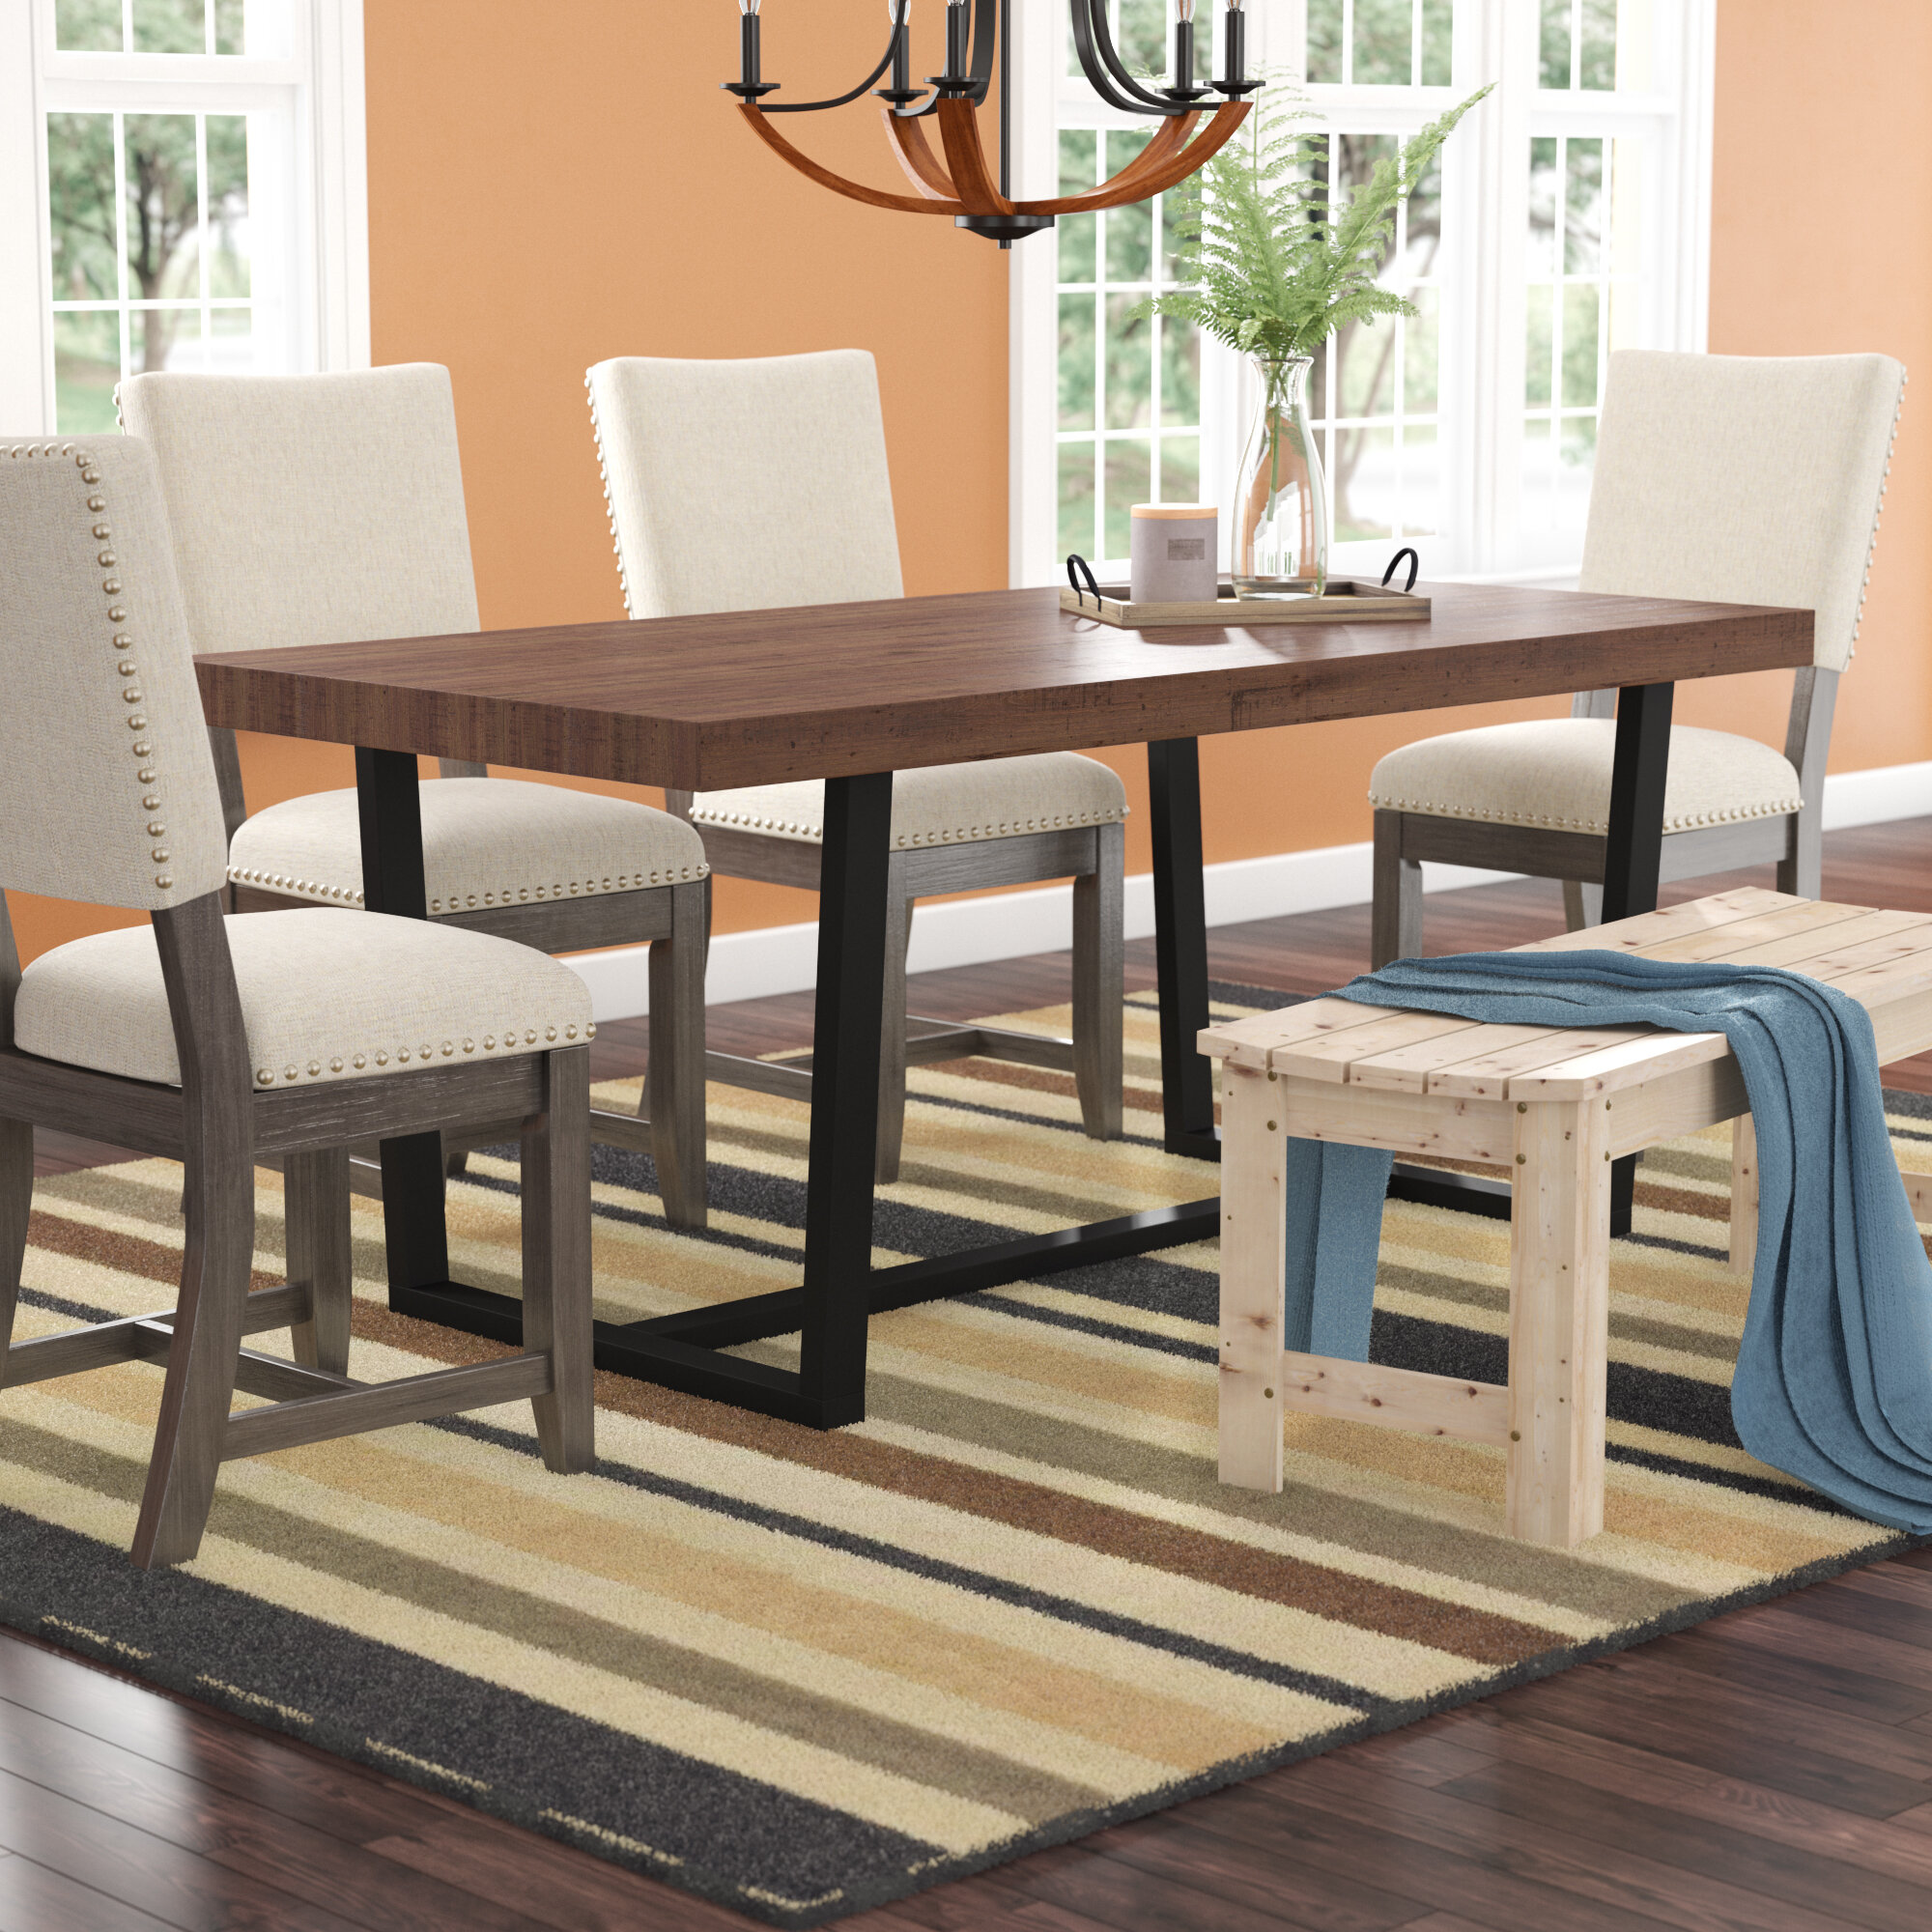 Exceptionnel Neely Distressed Solid Wood Dining Table